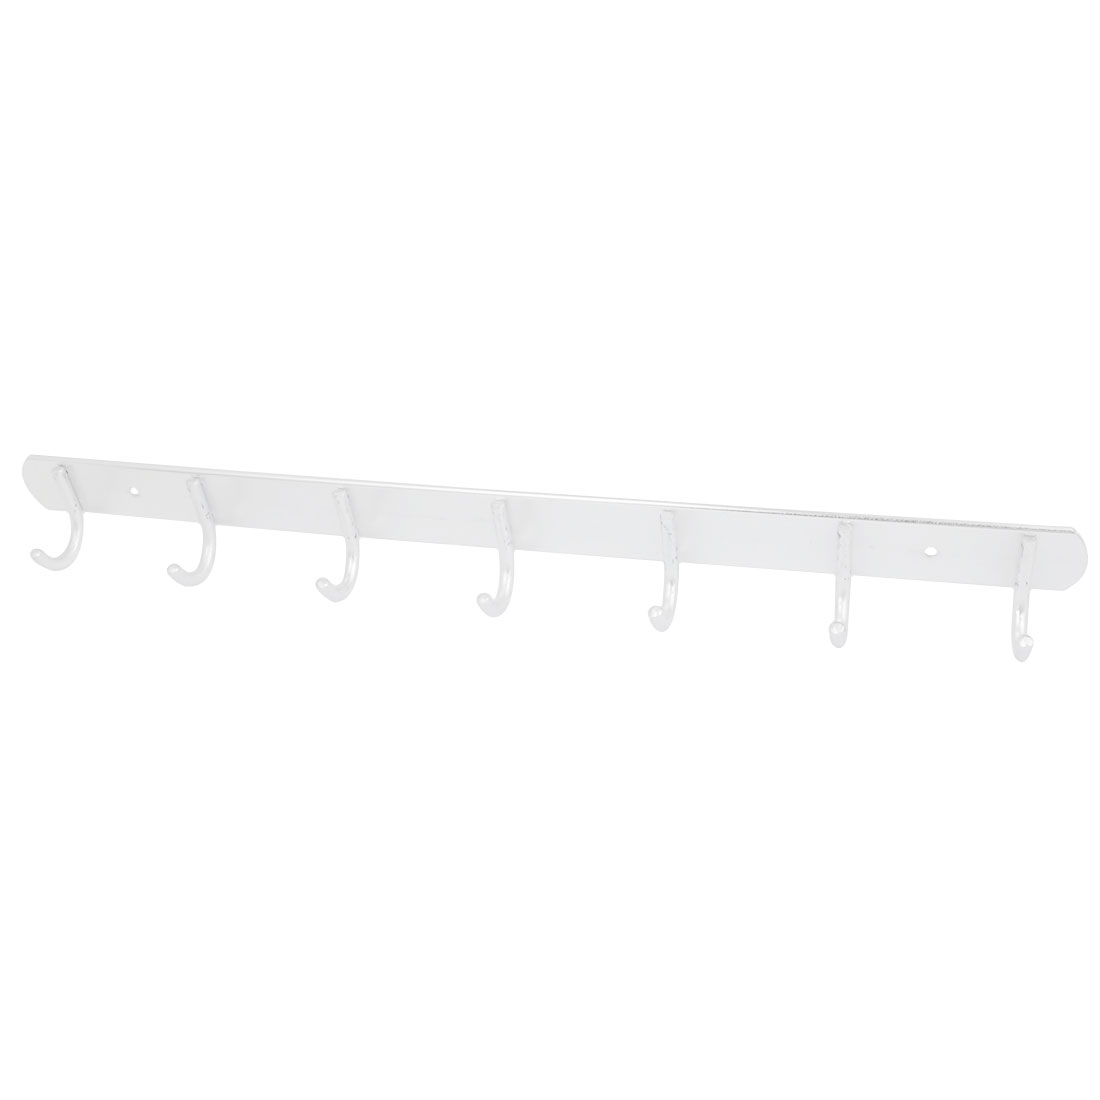 Bedroom Kitchen Aluminum 7 Hooks Wall Mounted Hanger Towel Clothes Hanging Rack